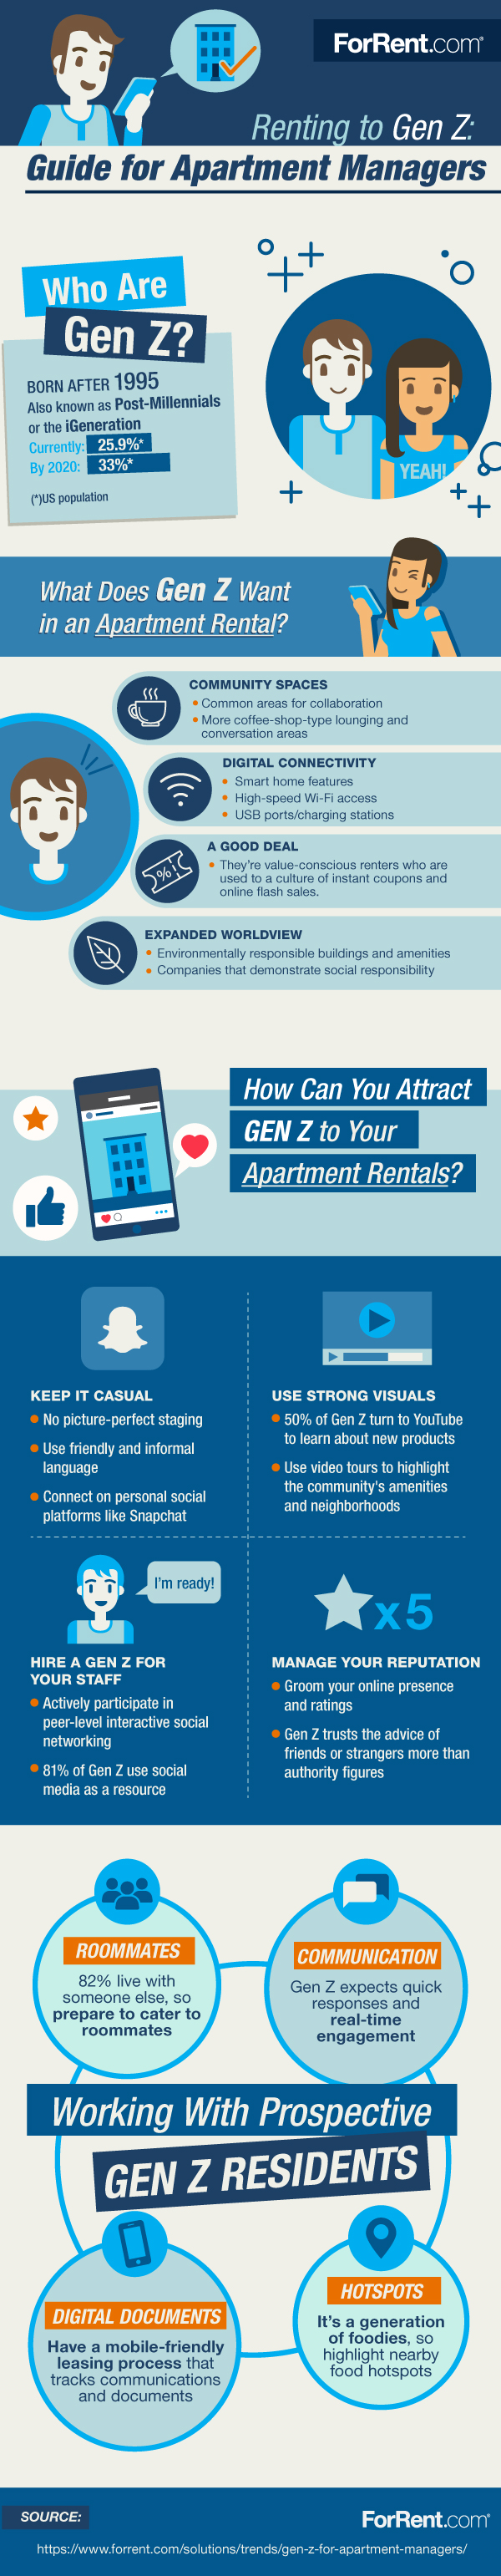 Renting to Gen Z: Guide for Apartment Managers